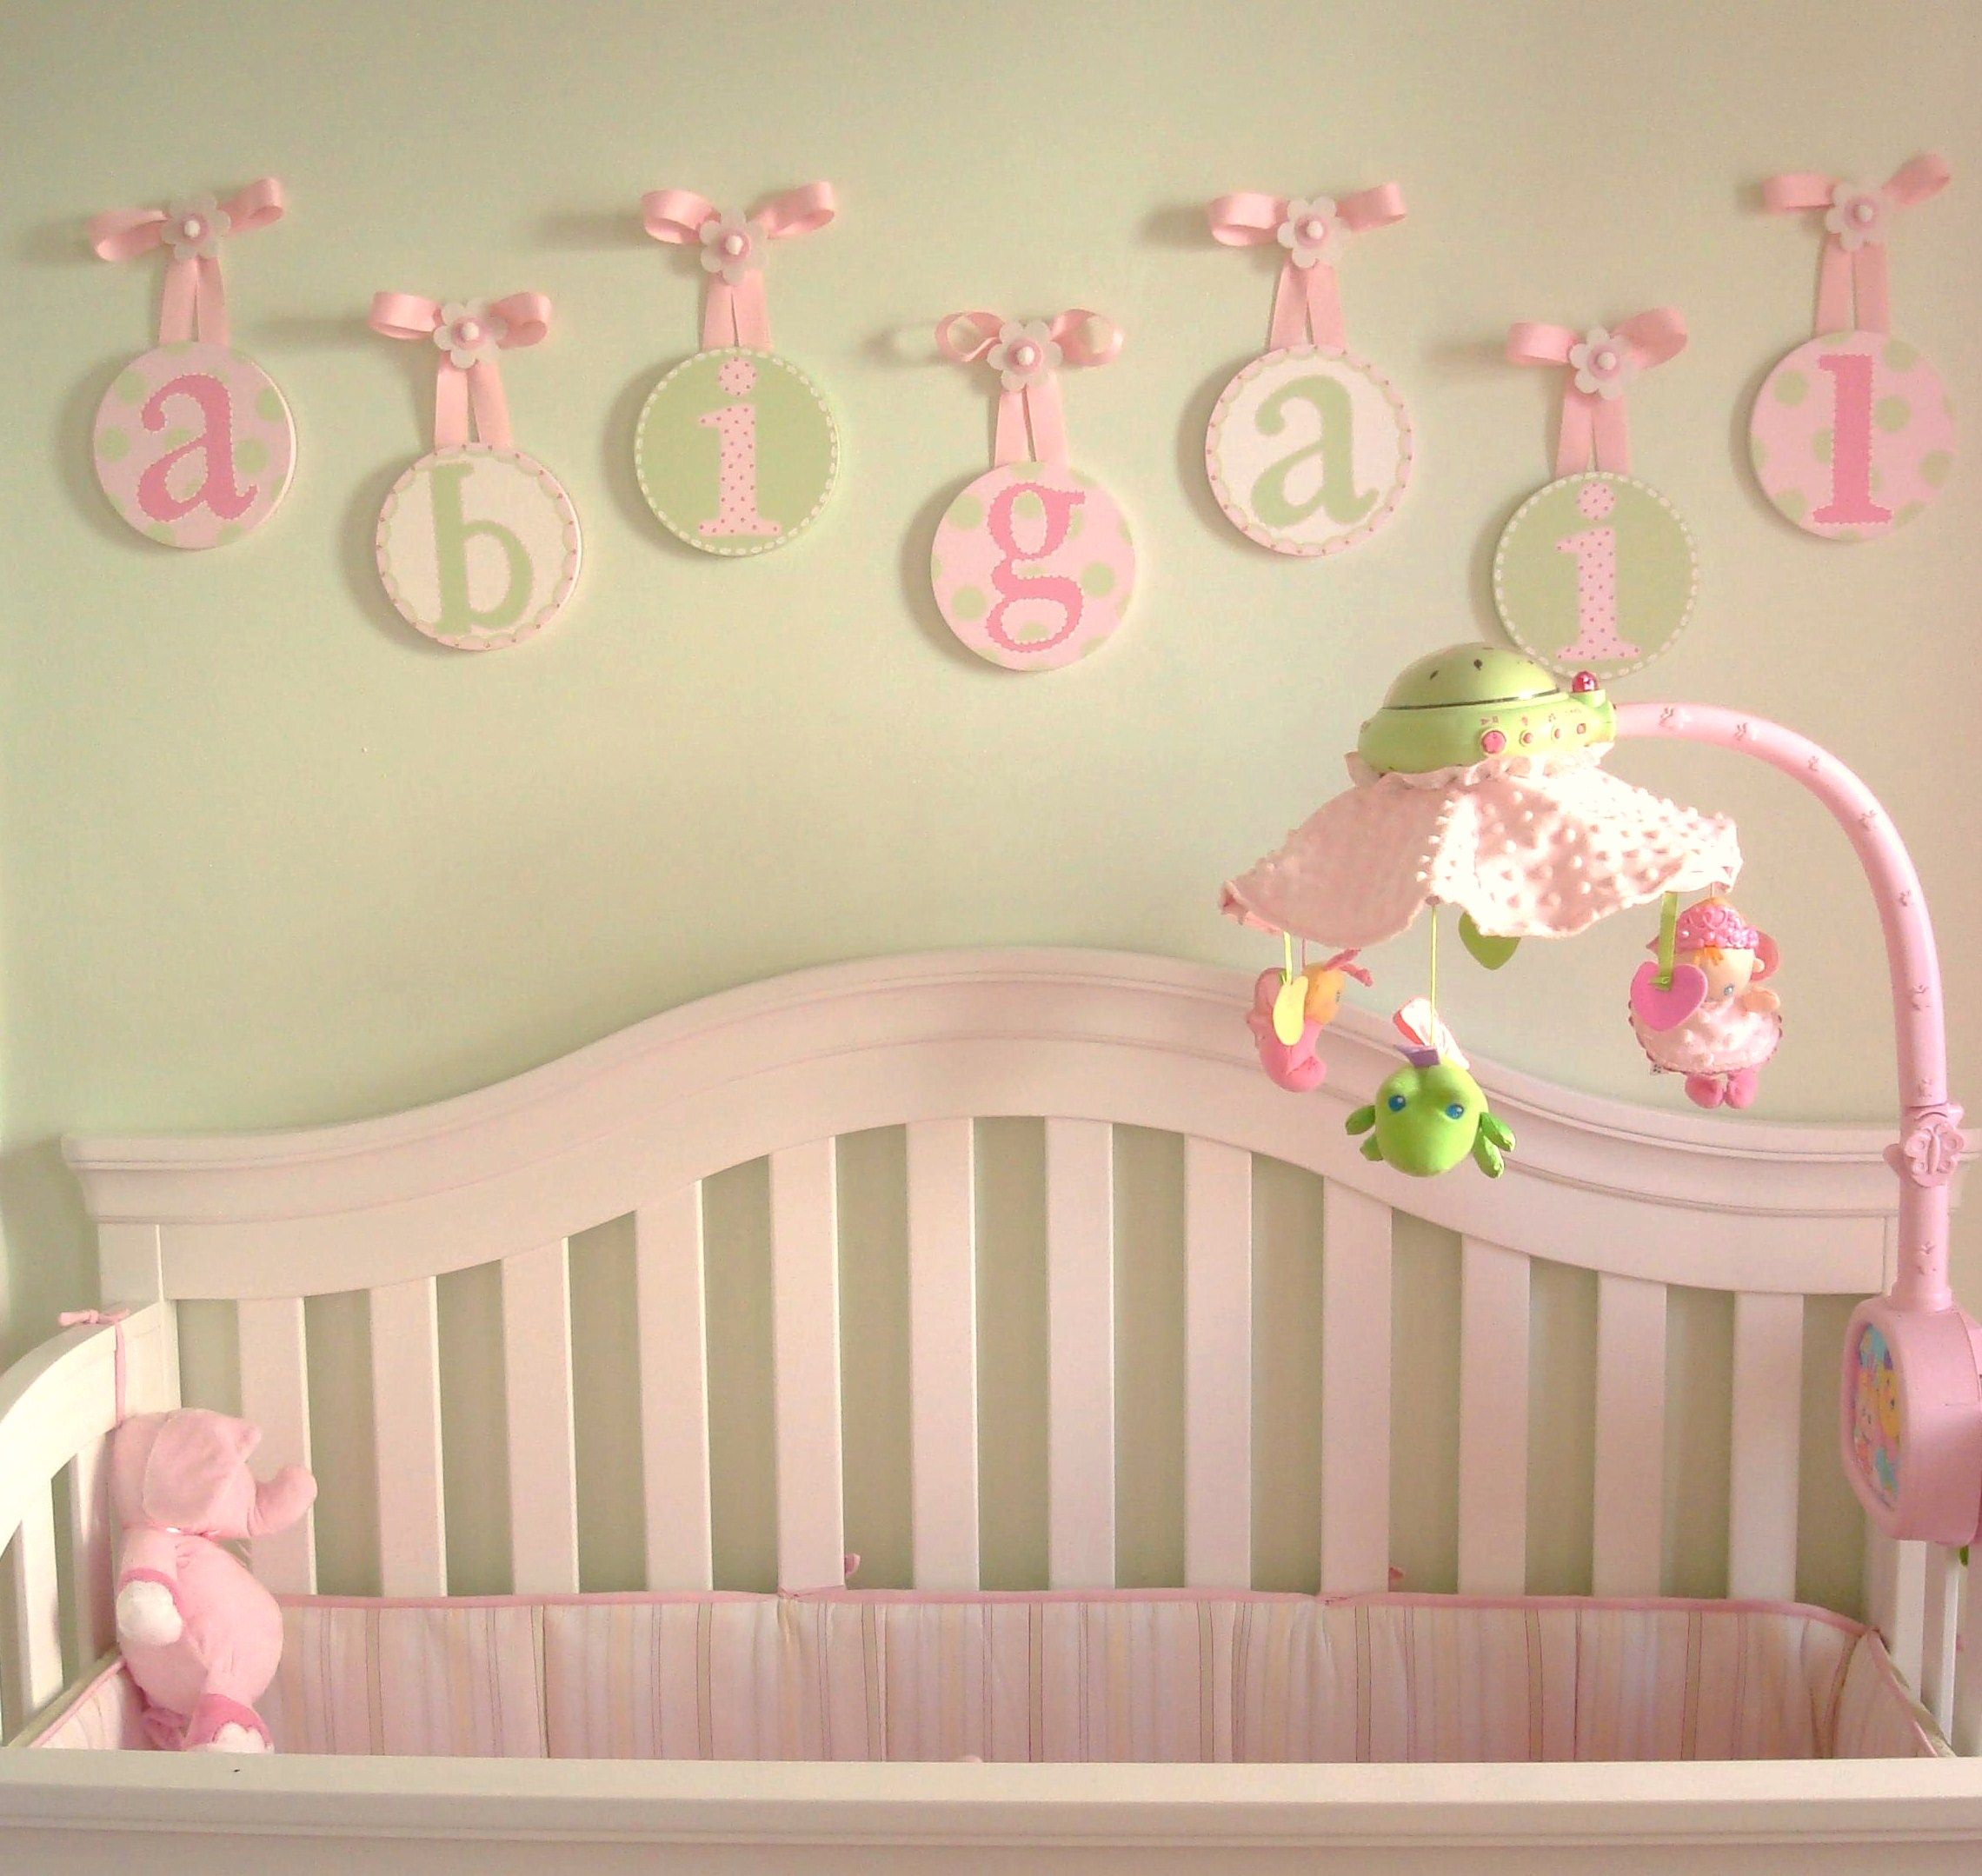 1000 images about nursery name displays on pinterest vinyls